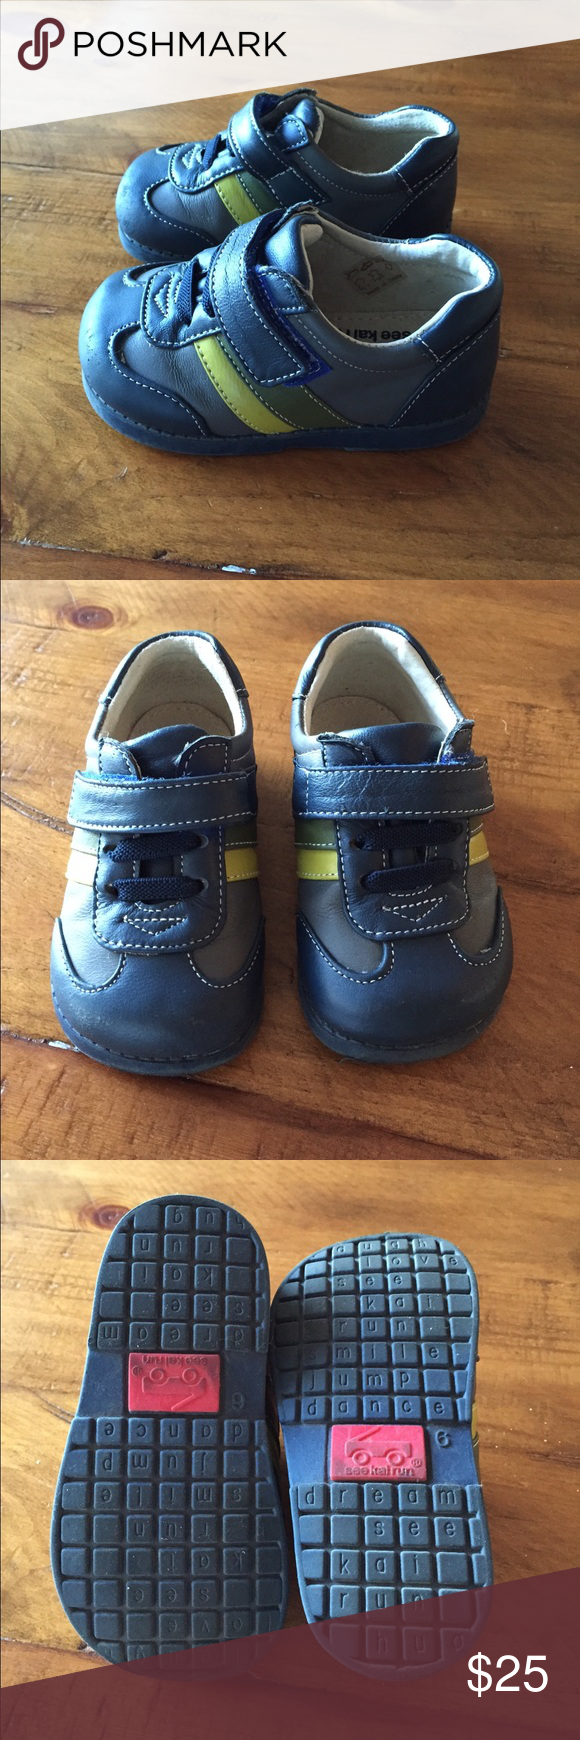 See Kai Run Shoes Like new condition. Adorable and well made shoes. Only work a few times, as shown on soles. See Kai Run Shoes